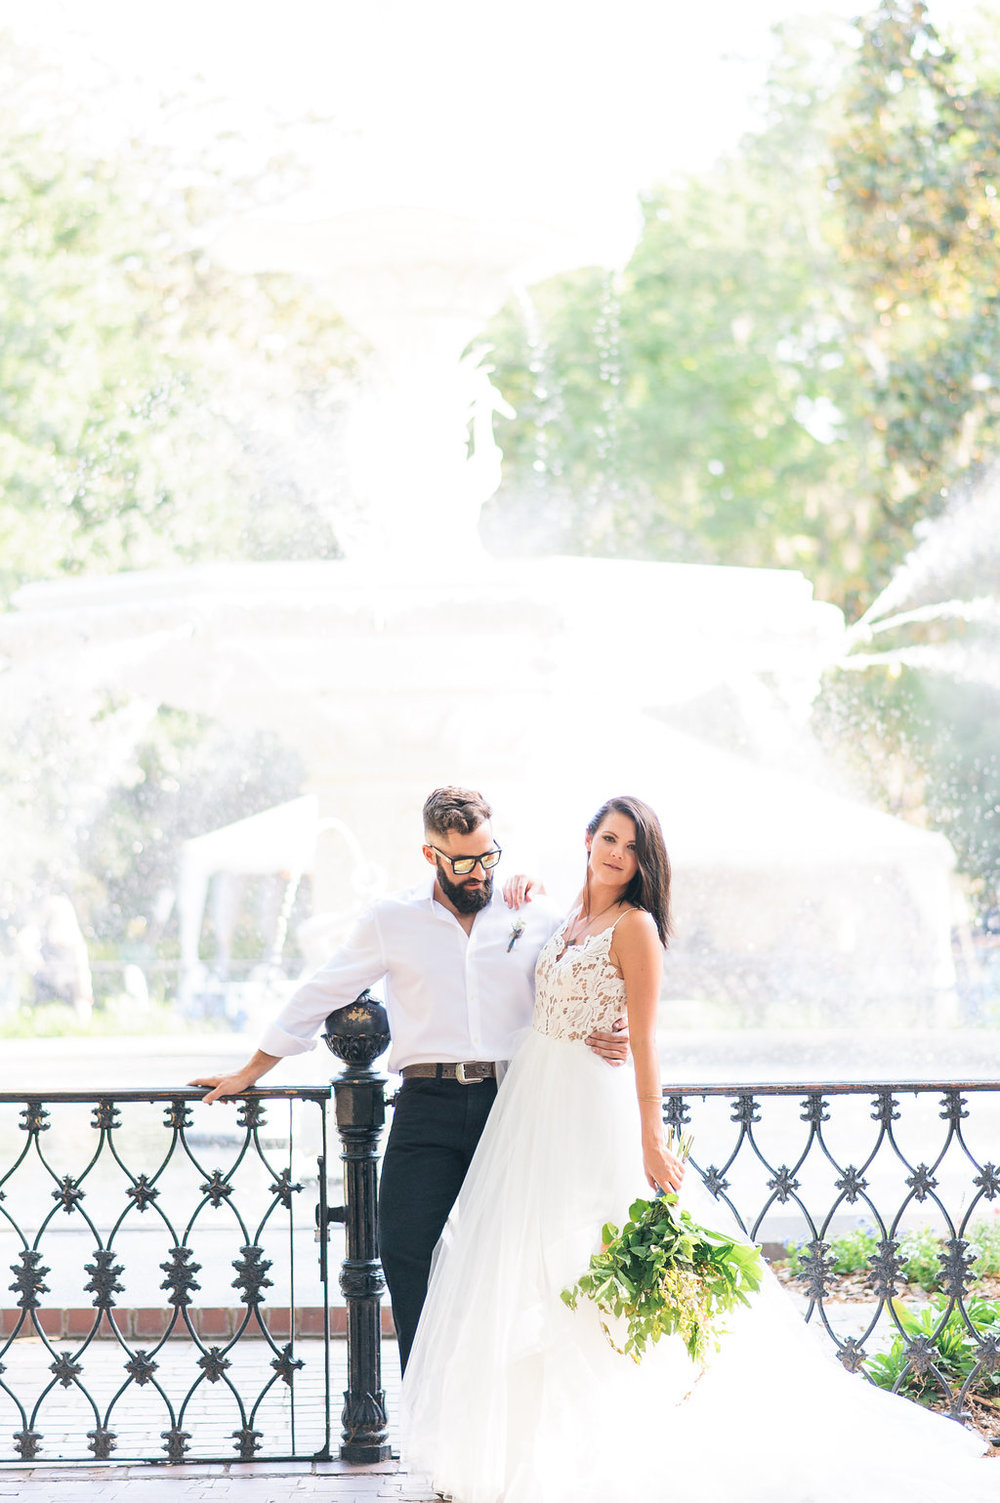 meg-hill-photography-blush-by-hayley-paige-halo-michelle-royal-makeup-timeless-motorcoaches-rev-joe-wadas-rum-runners-local-11-ten-ivory-and-beau-coastal-shoot-savannah-wedding-savannah-bridal-boutique-savannah-wedding-dresses-savannah-elopement-46.jpg